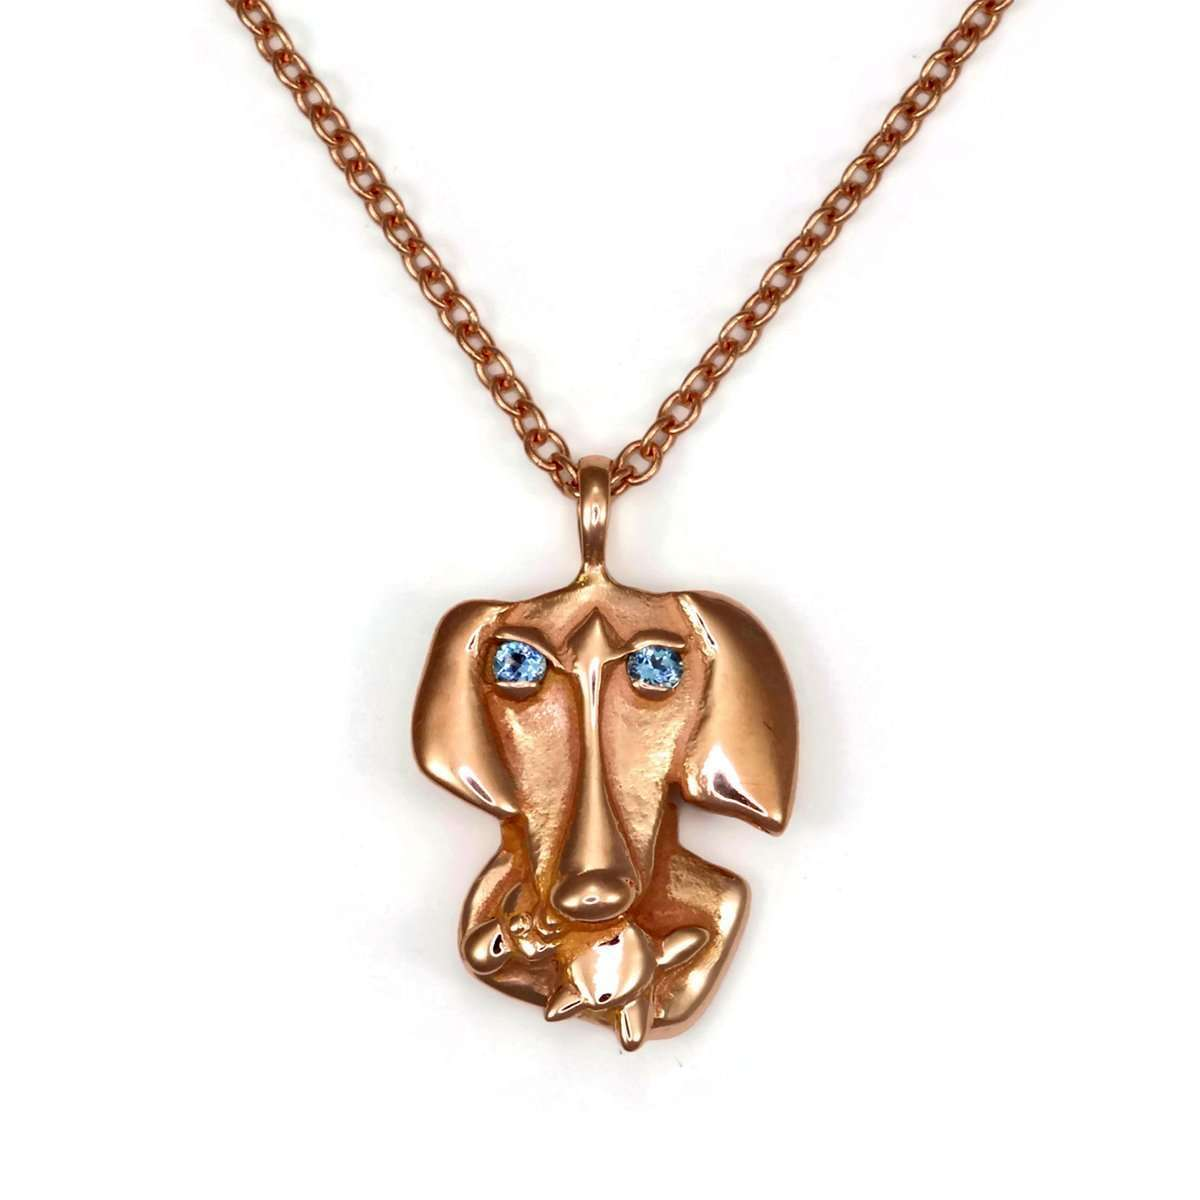 14kt Weimaraner Necklace With Aquamarine Eyes-Donna Pizarro Designs-JewelStreet EU